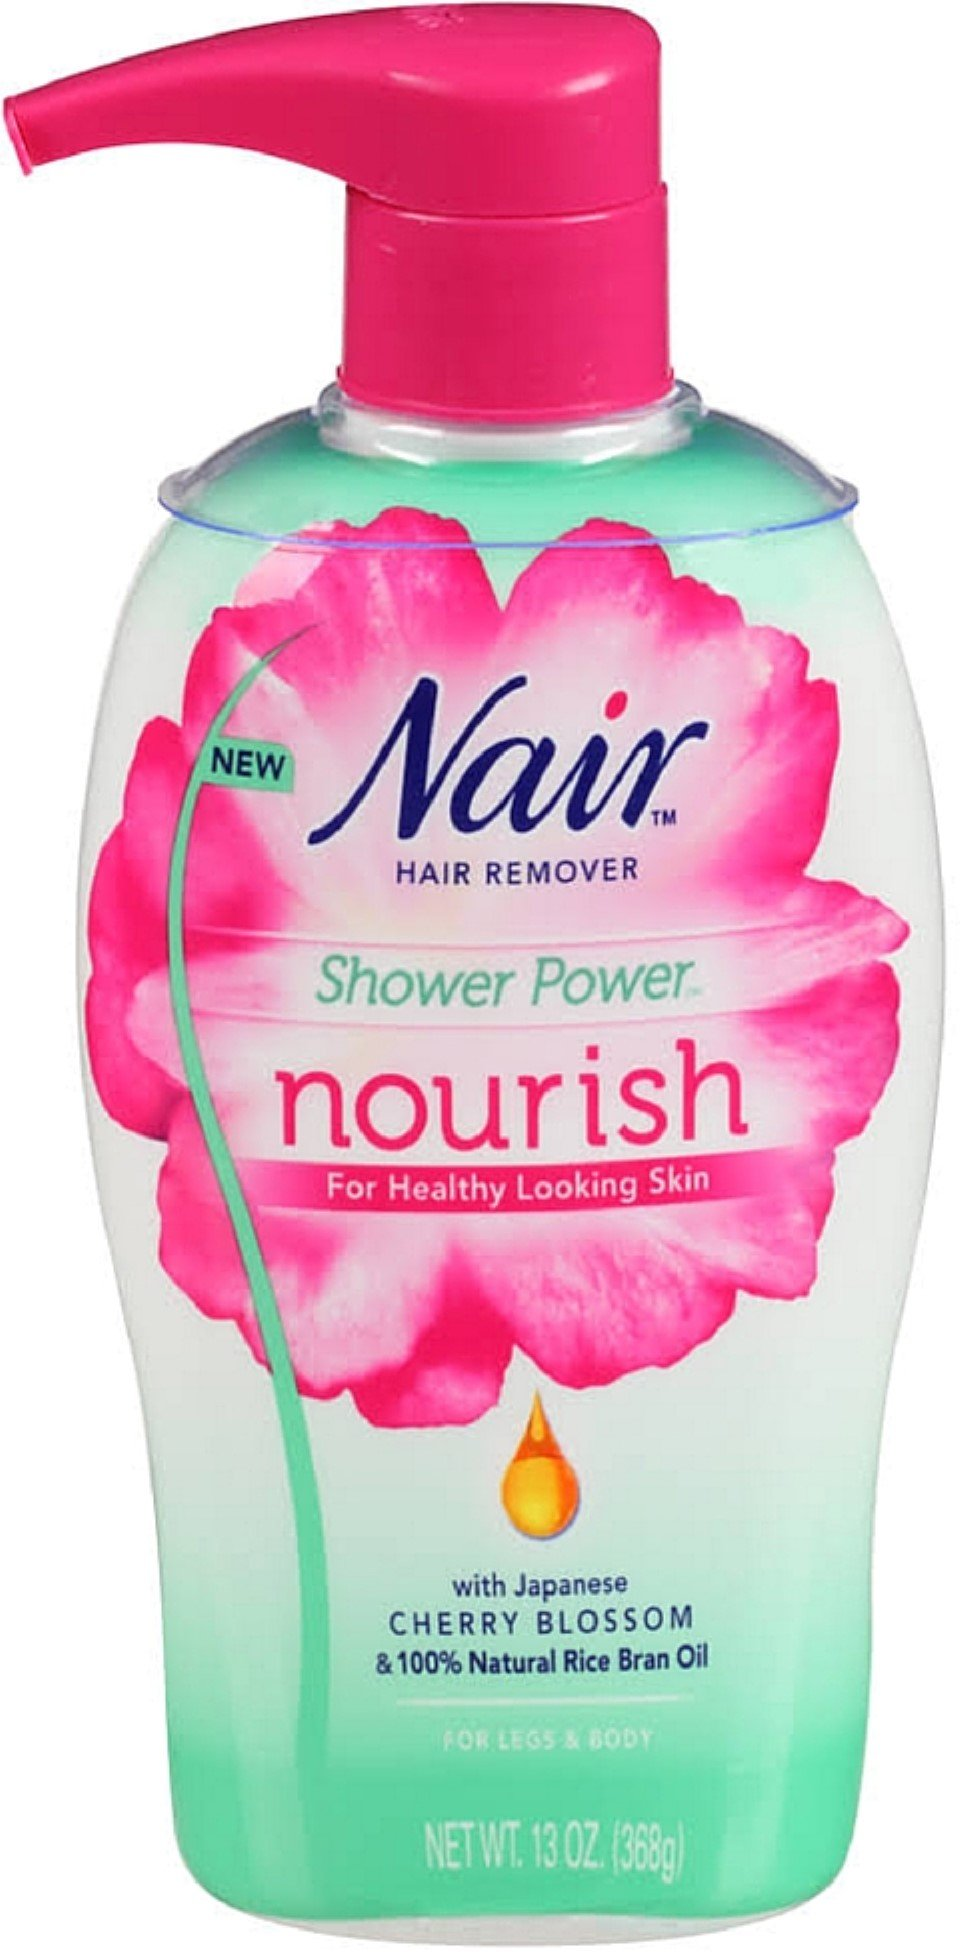 Nair Hair Remover Shower Power Nourish Pump For Legs & Body 13 oz (Pack of 12)